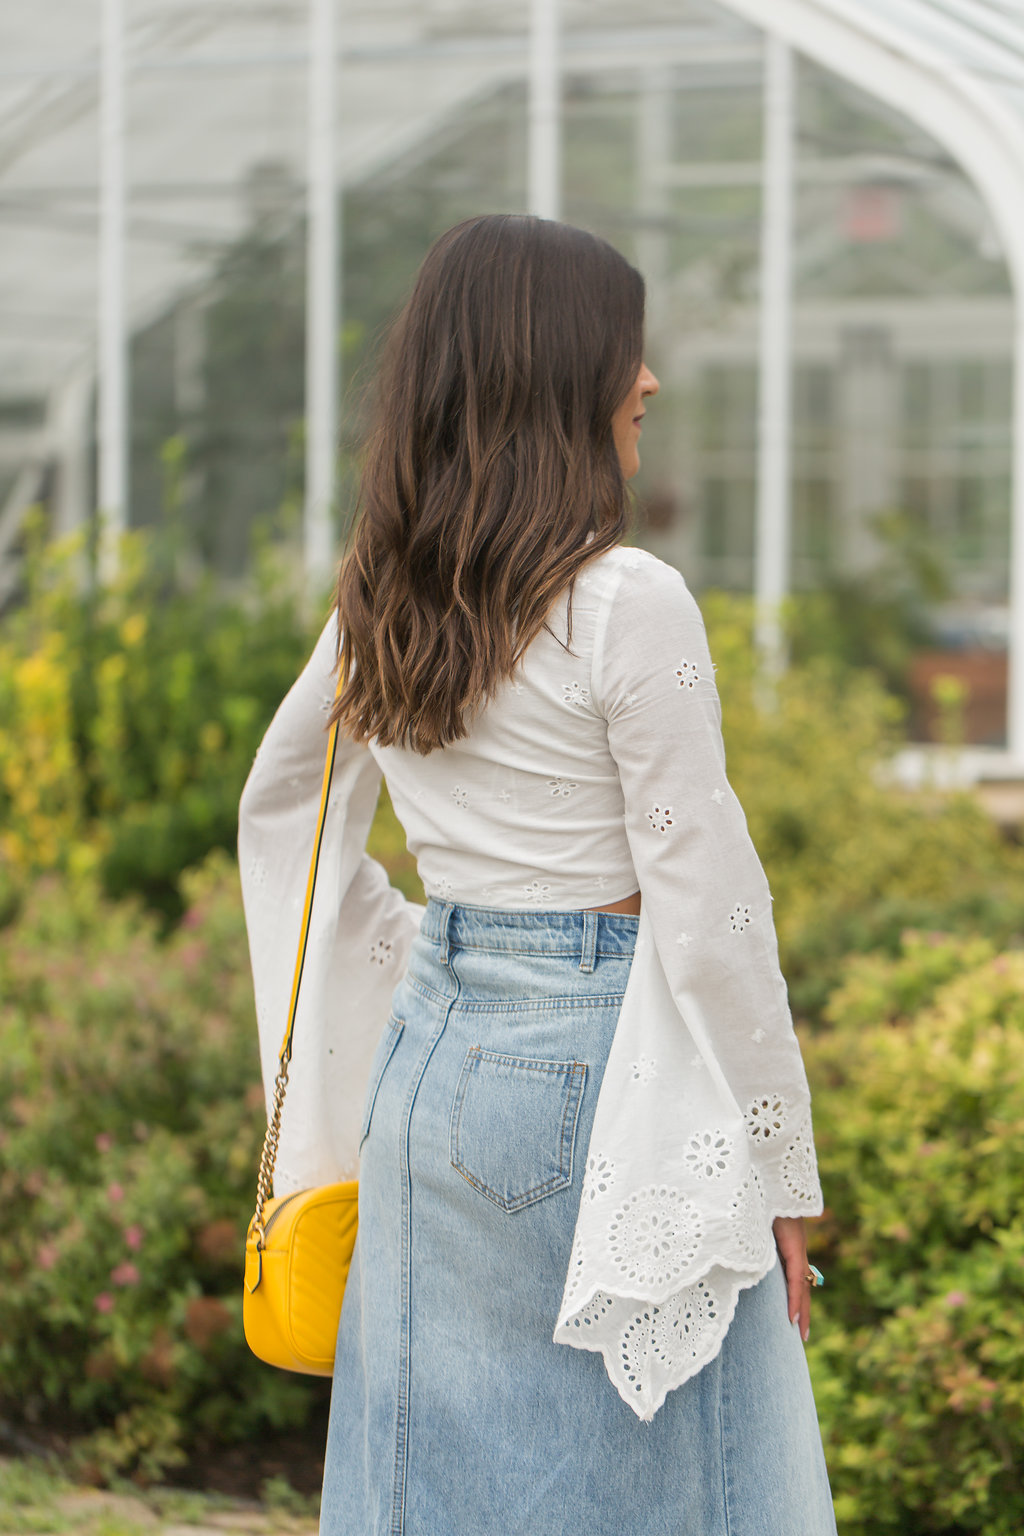 Lifestyle Blogger Kelsey Kaplan of Kelsey Kaplan Fashion wearing denim maxi skirt and yellow Gucci Purse